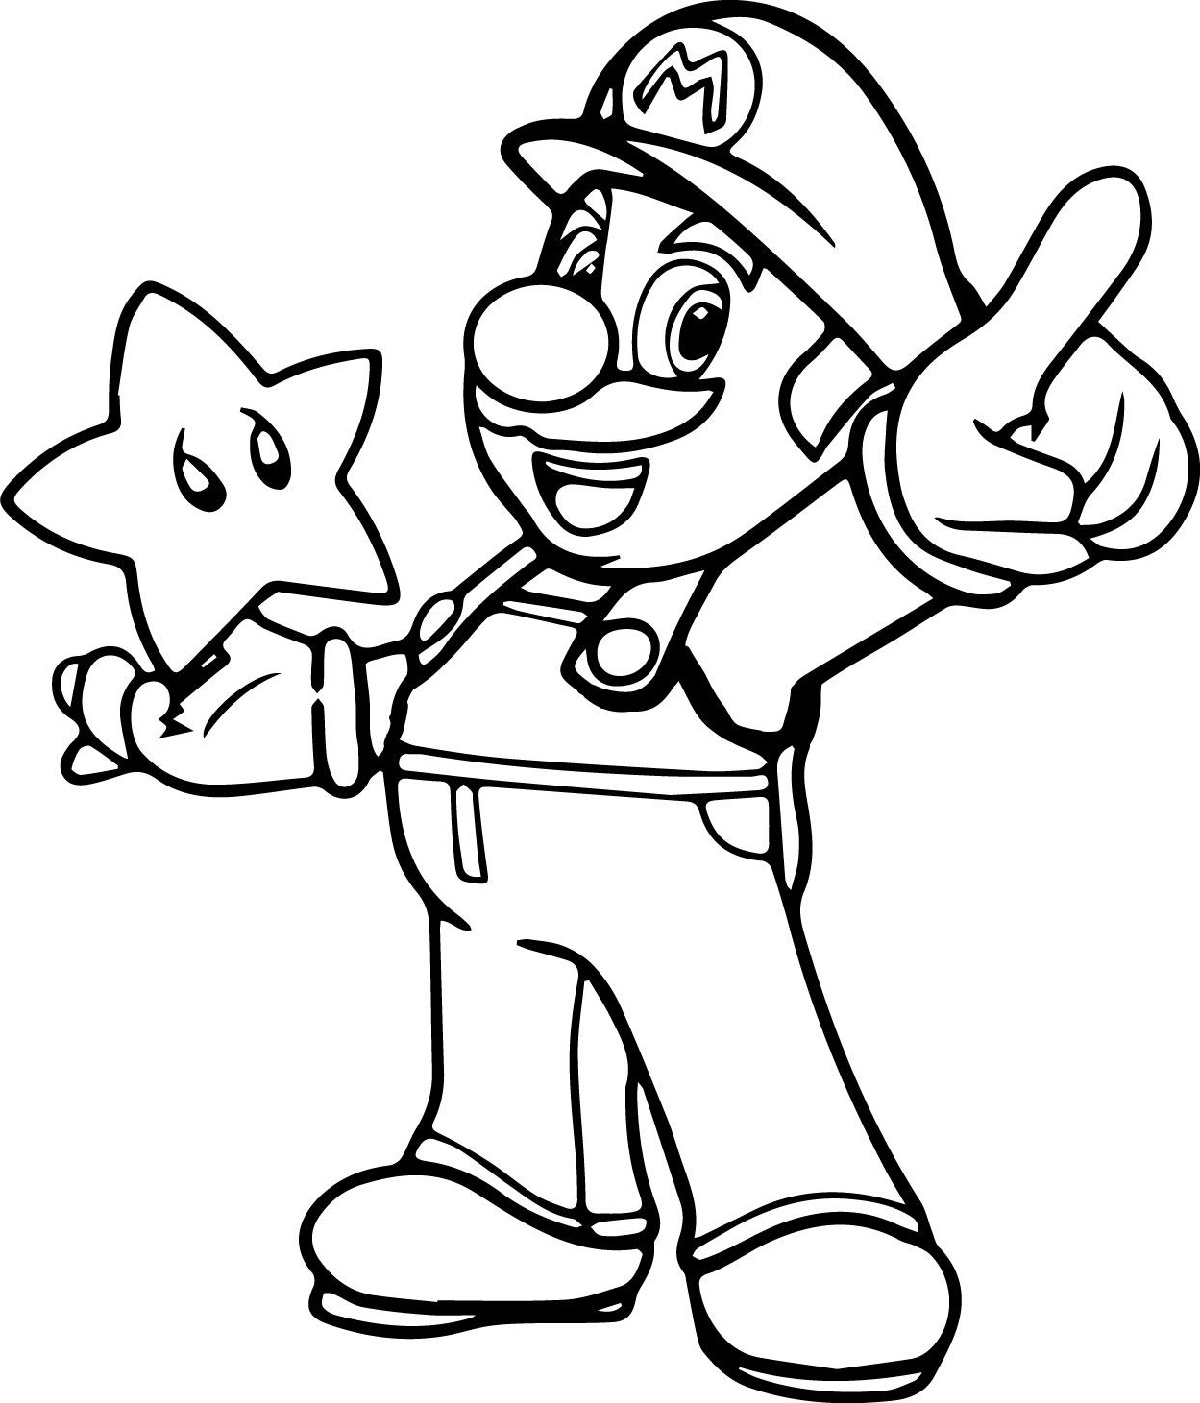 mario coloring book pages mario coloring pages black and white super mario coloring book pages mario